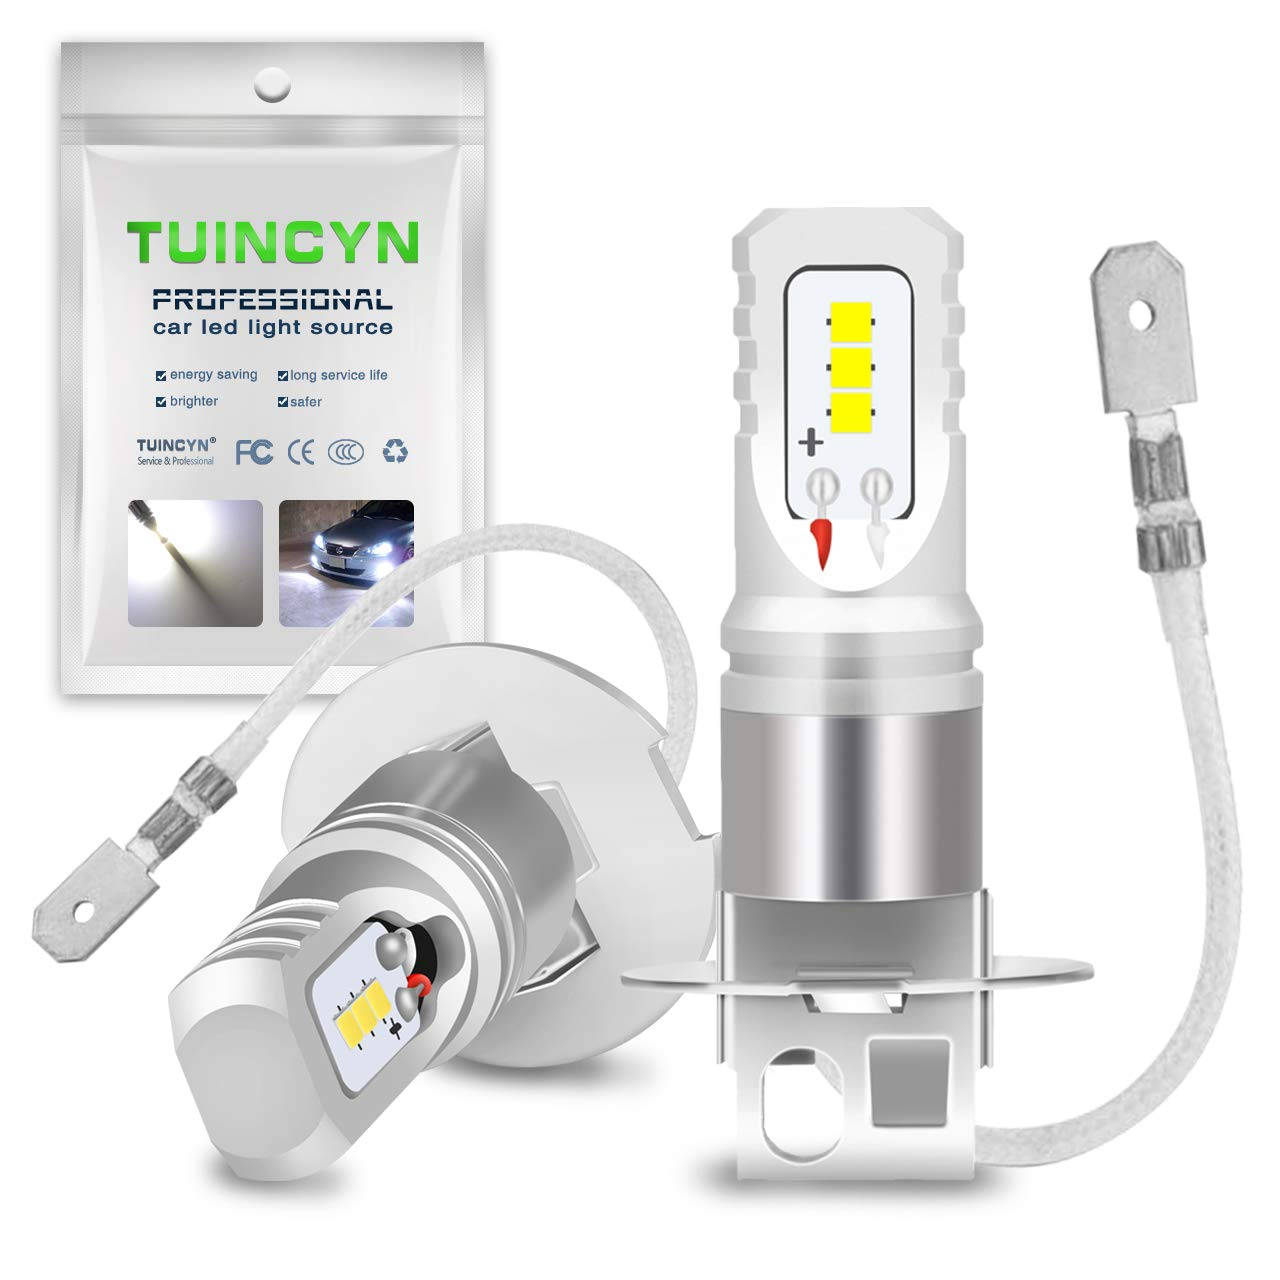 TUINCYN 1600Lm Extremely Bright H3 LED Fog Light Bulbs Replacement 6500K White High Power 80W CSP Chips DRL Daylight LED Bulb DC 12V-24V (2-Pack)